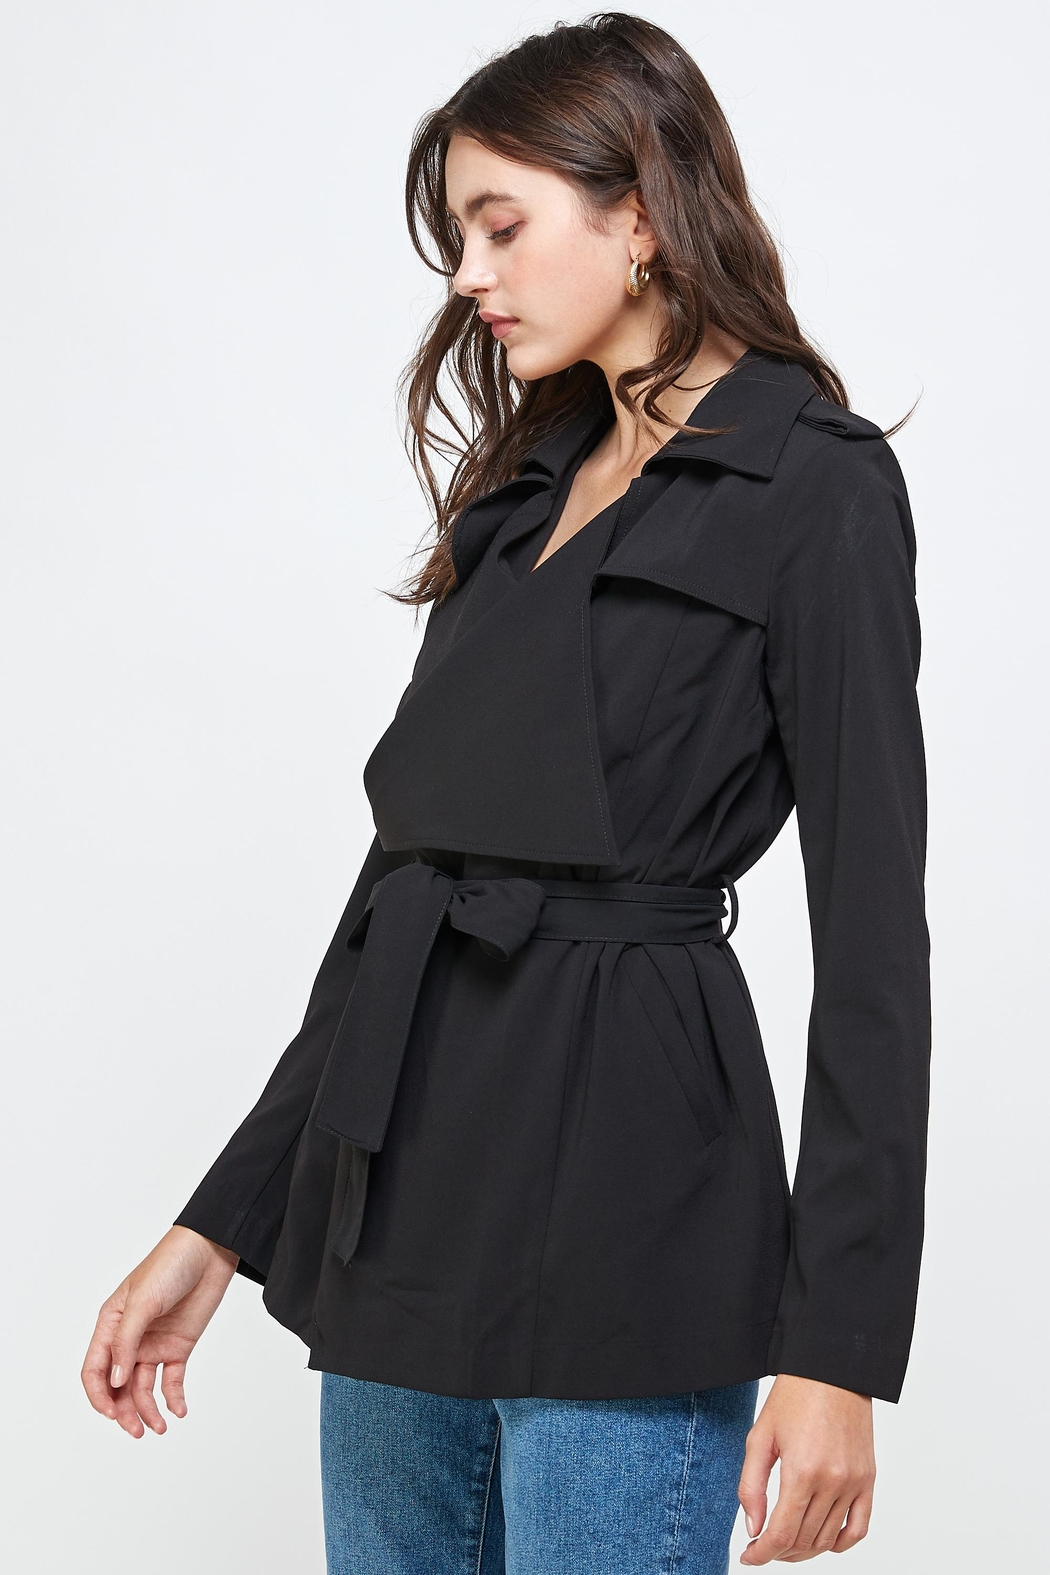 Kaii Draped Collar Trench Coat Jacket Top - Front Full Image